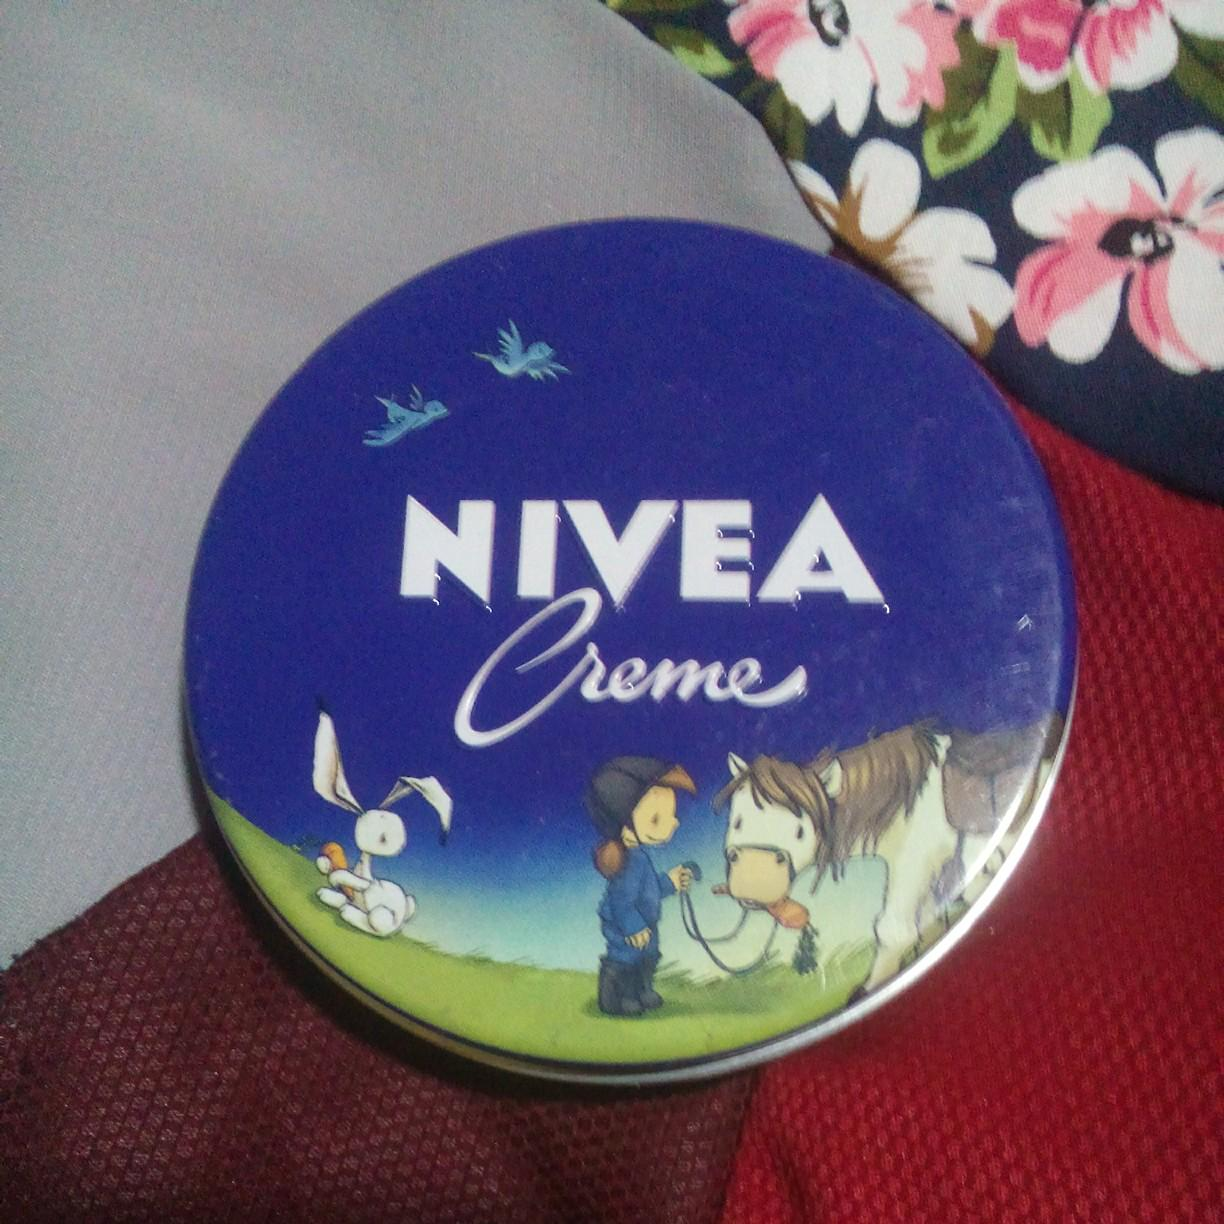 nivea creme made in germany